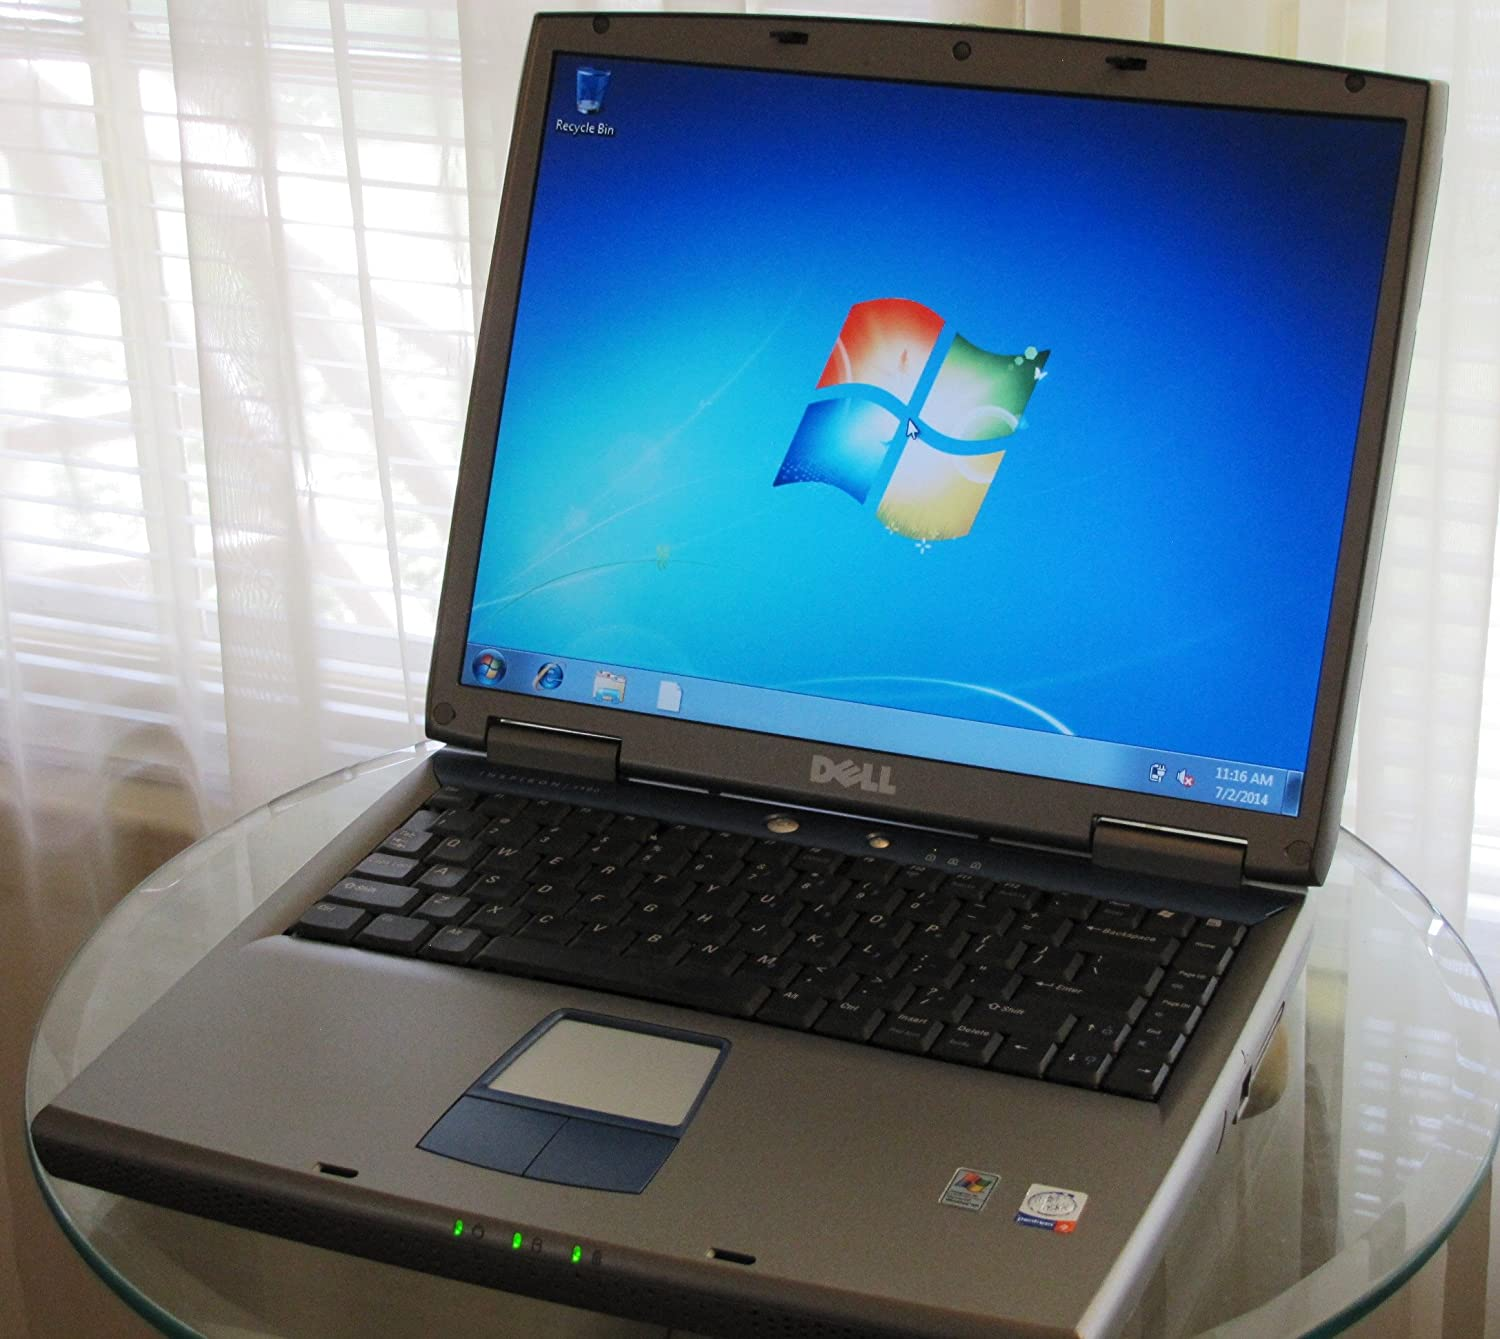 Dell-Inspiron-1100-Notebook